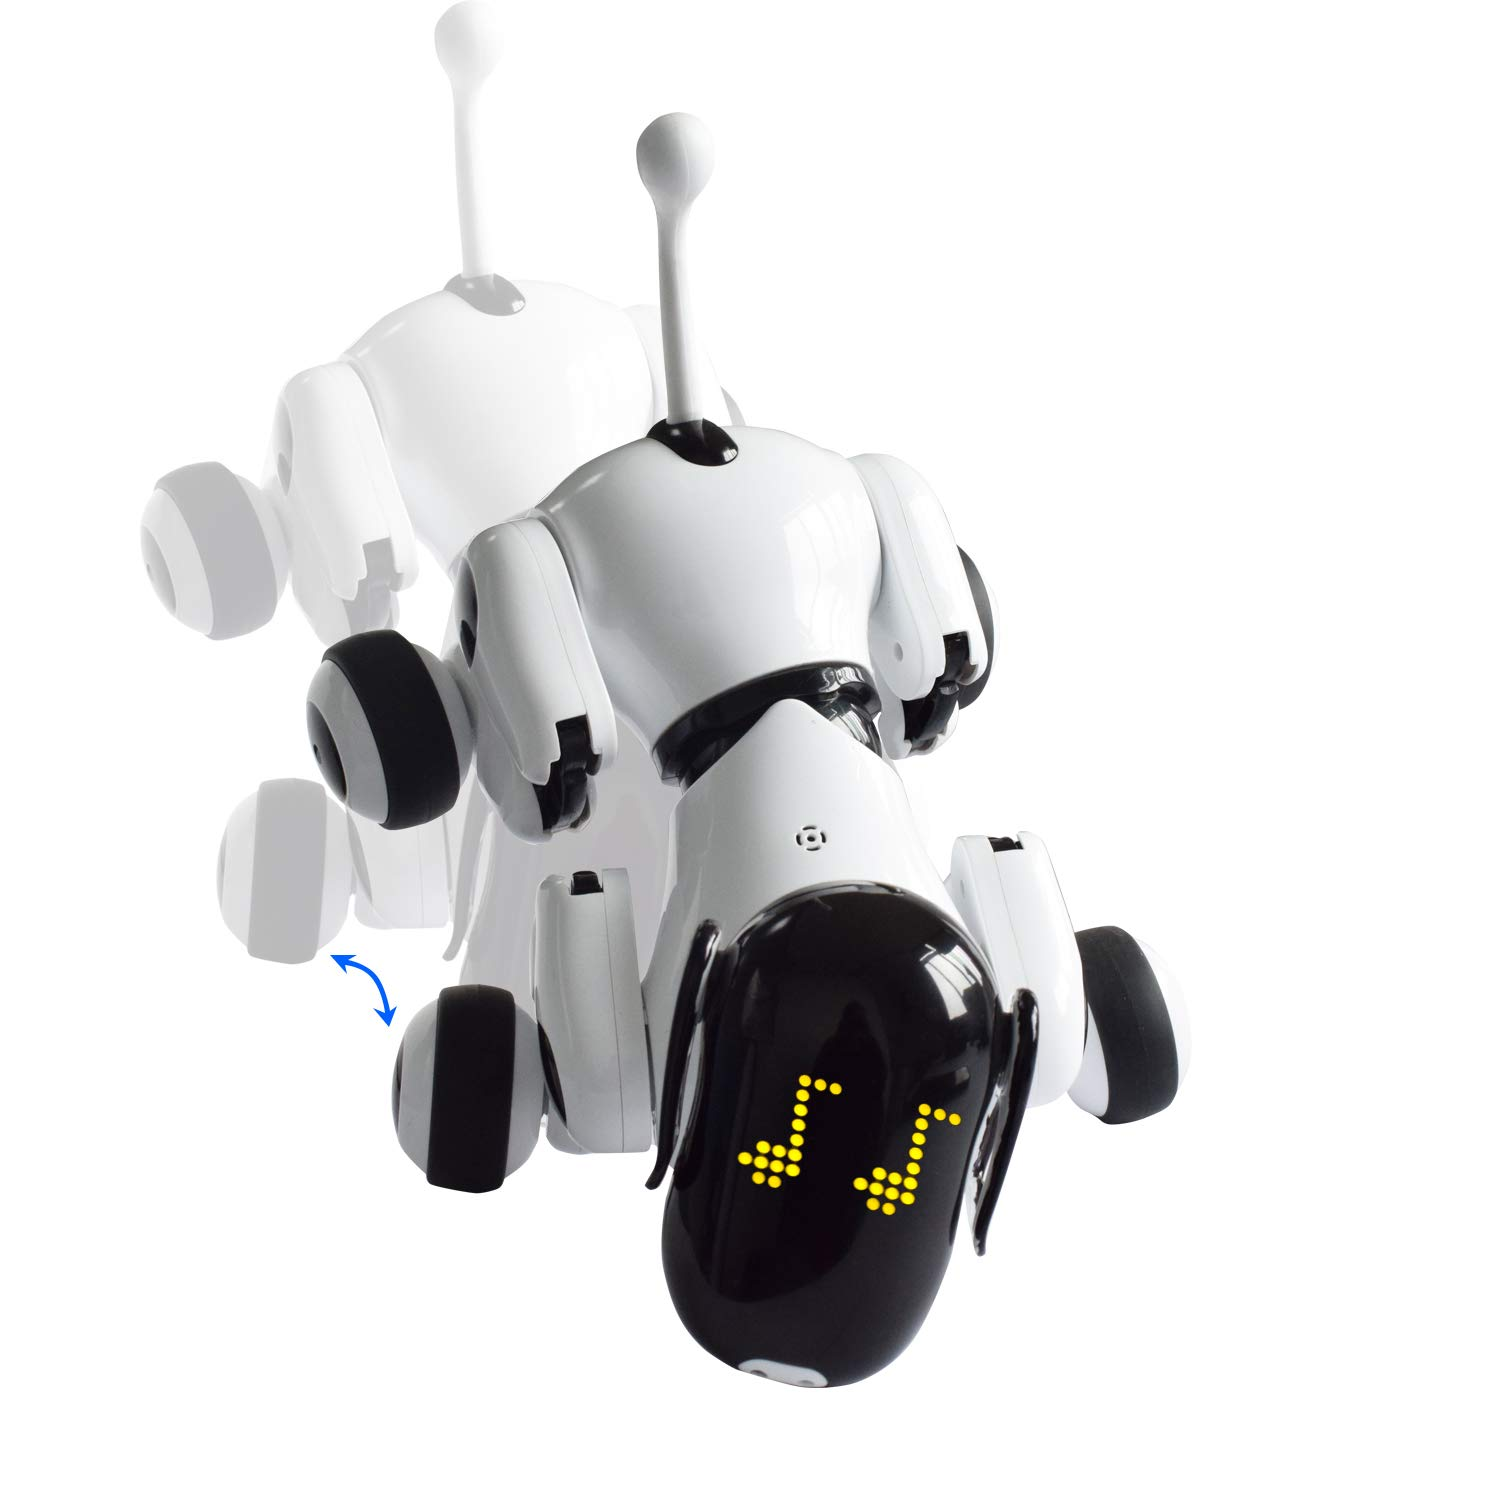 Contixo Independance Day Puppy Smart Interactive Robot Pet Toy for Kids, Voice, App, and Touch Controlled by Contixo (Image #7)